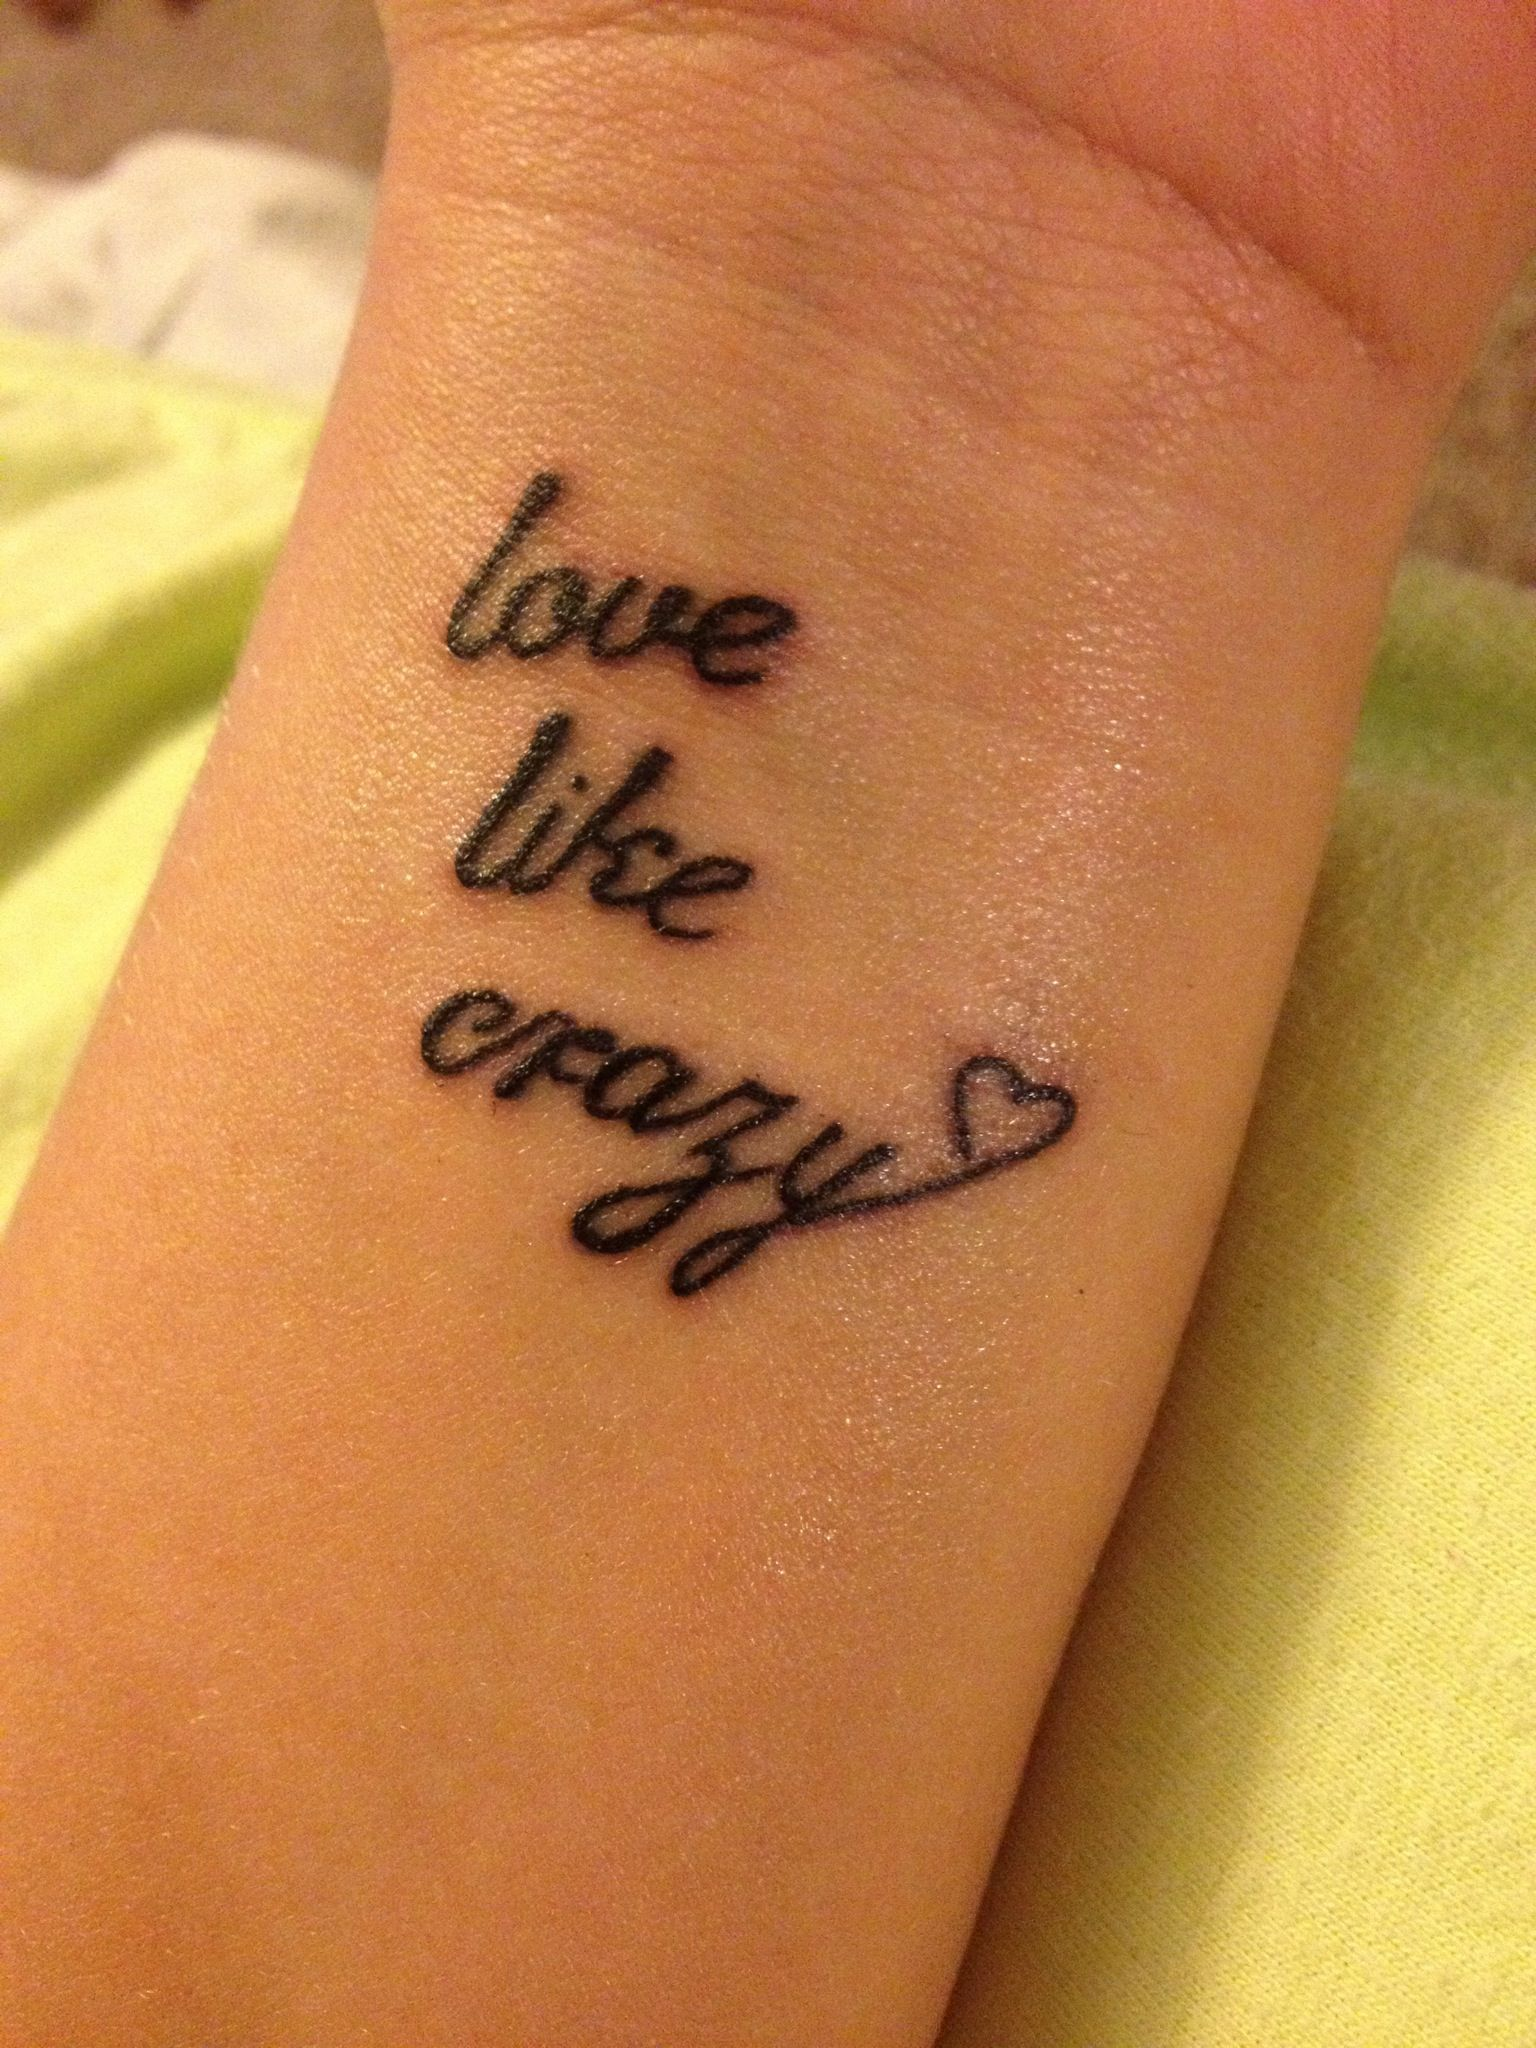 Tattoos Love Quotes Love Like Crazylee Brice  Tattoos  Pinterest  Lee Brice And